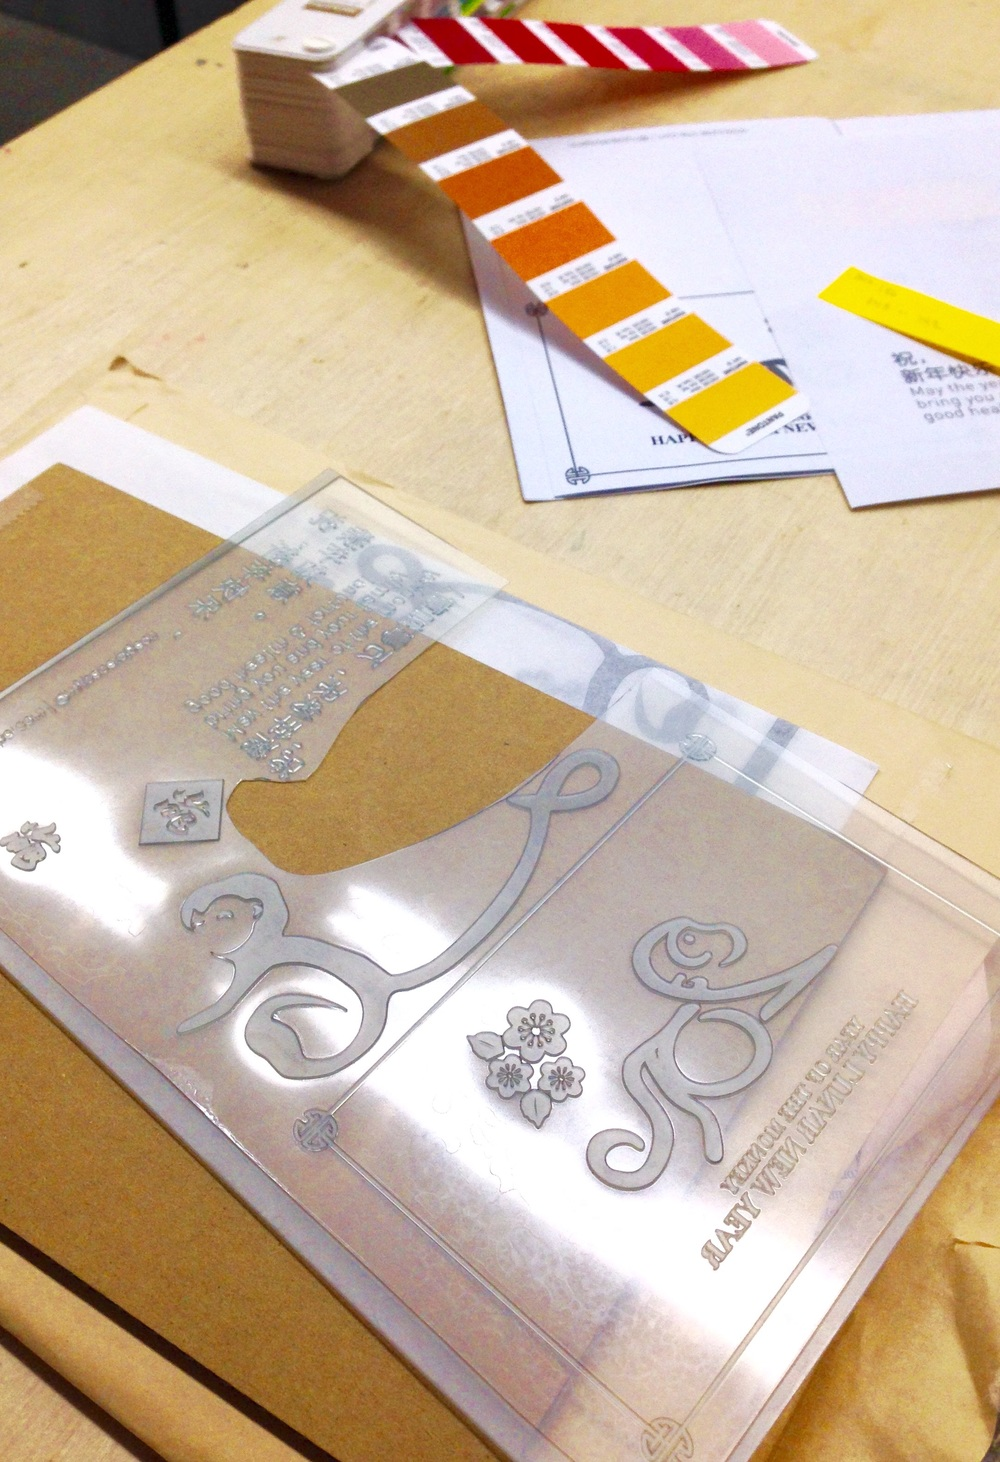 Letterpress mould for my CNY order of greeting cards